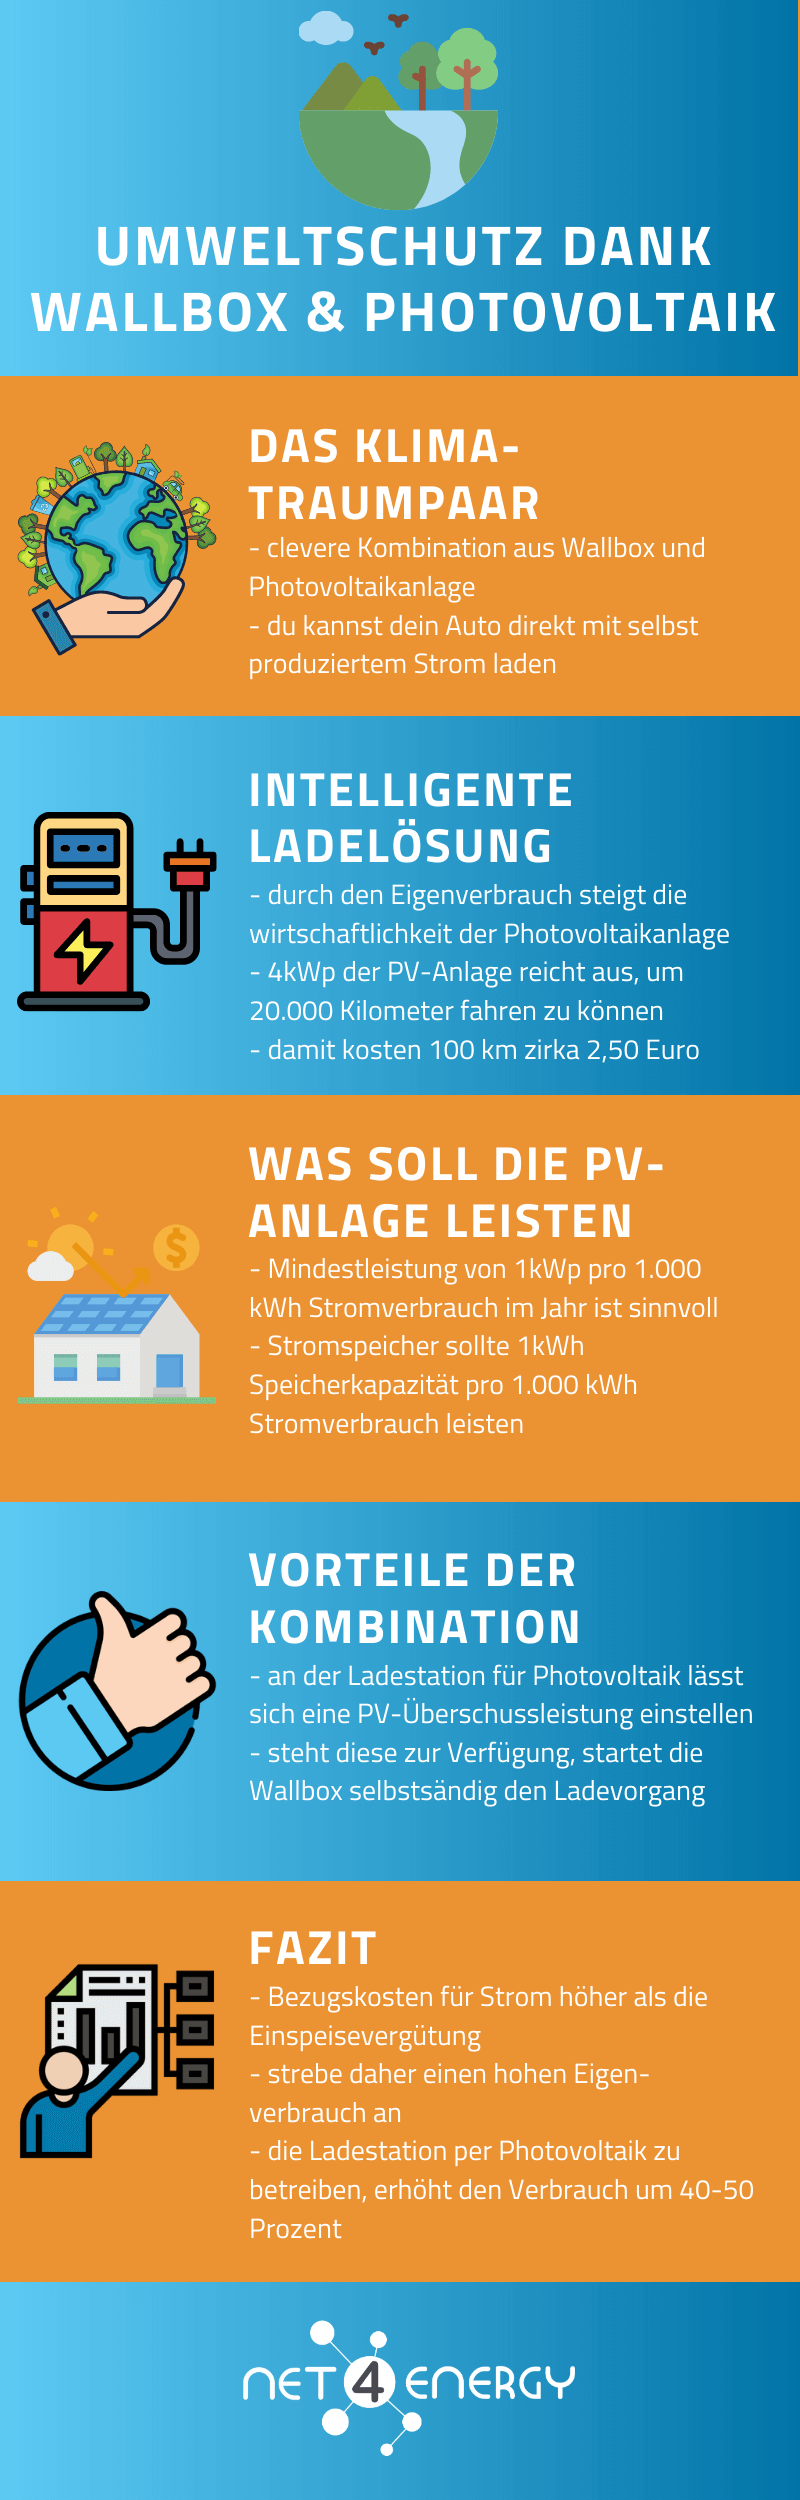 photovoltaik-wallbox-infografik-net4energy